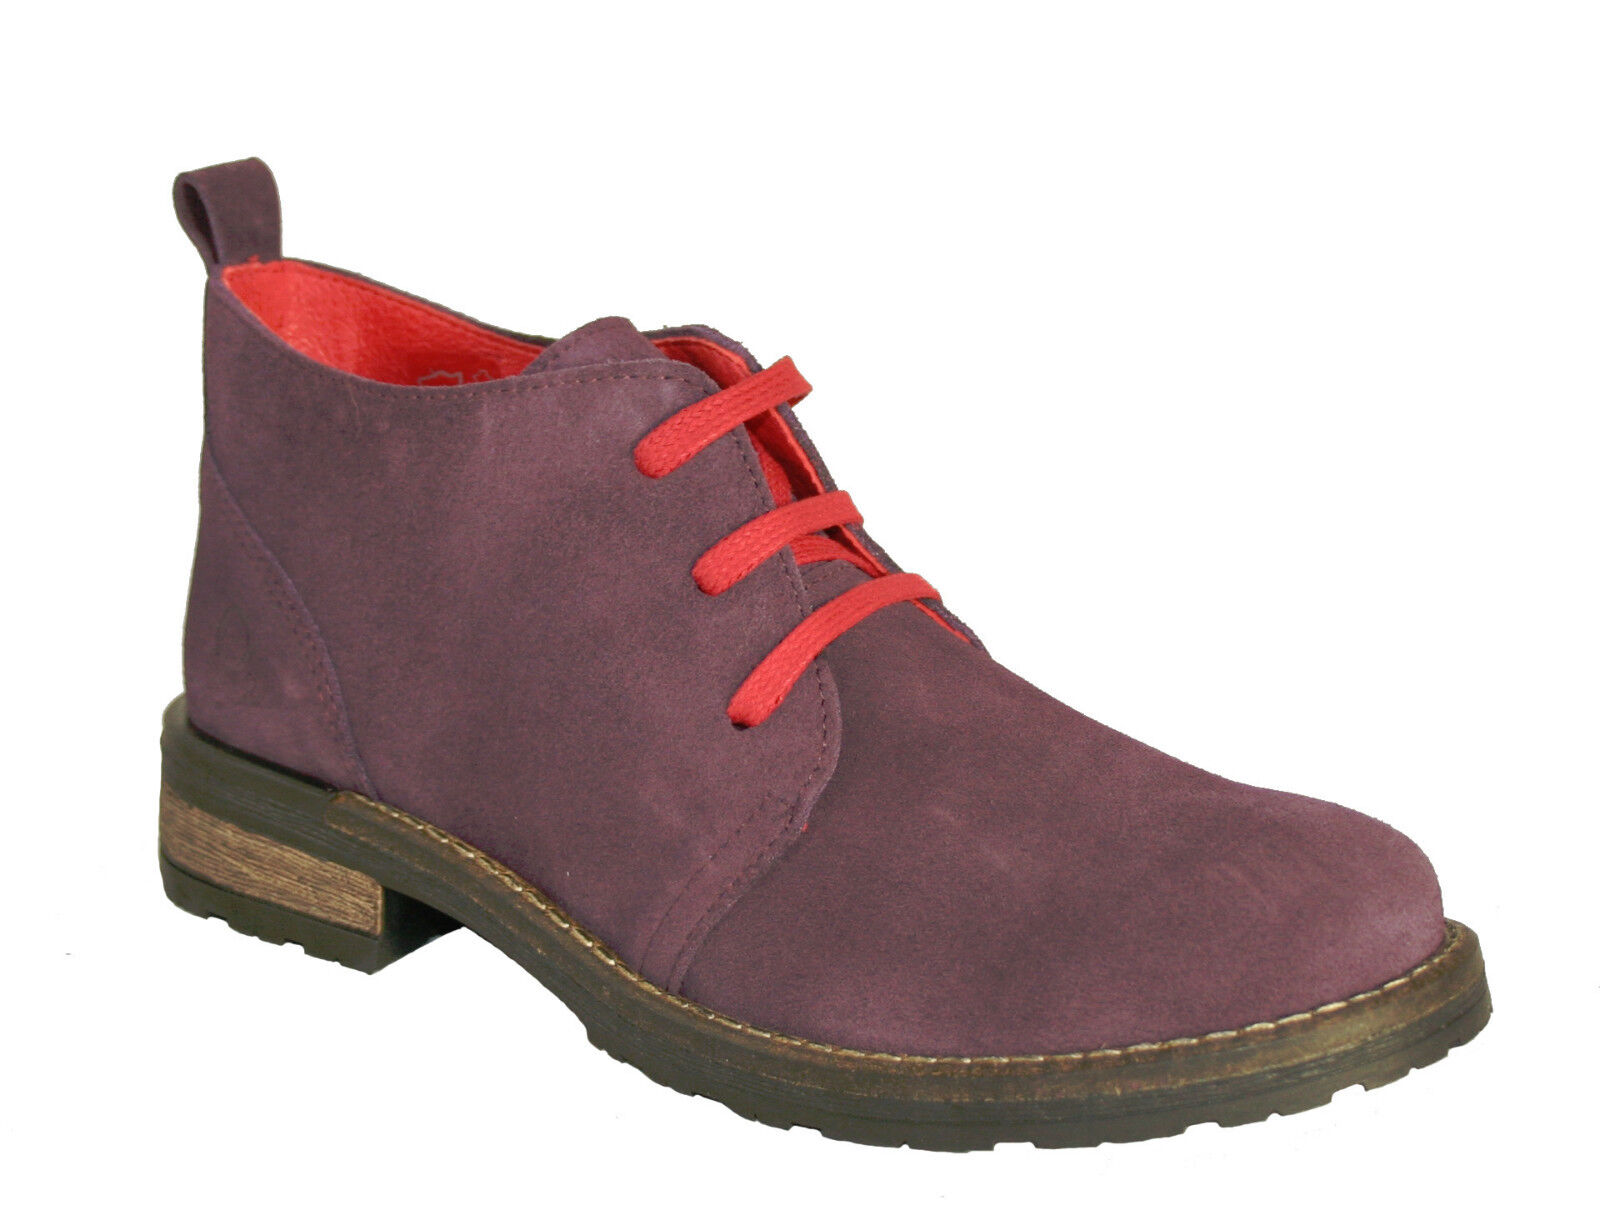 Oxygen Suede Größes Ankle Boot Tweed Purple Größes Suede 36-41 (UK3 -7.5) 016b20